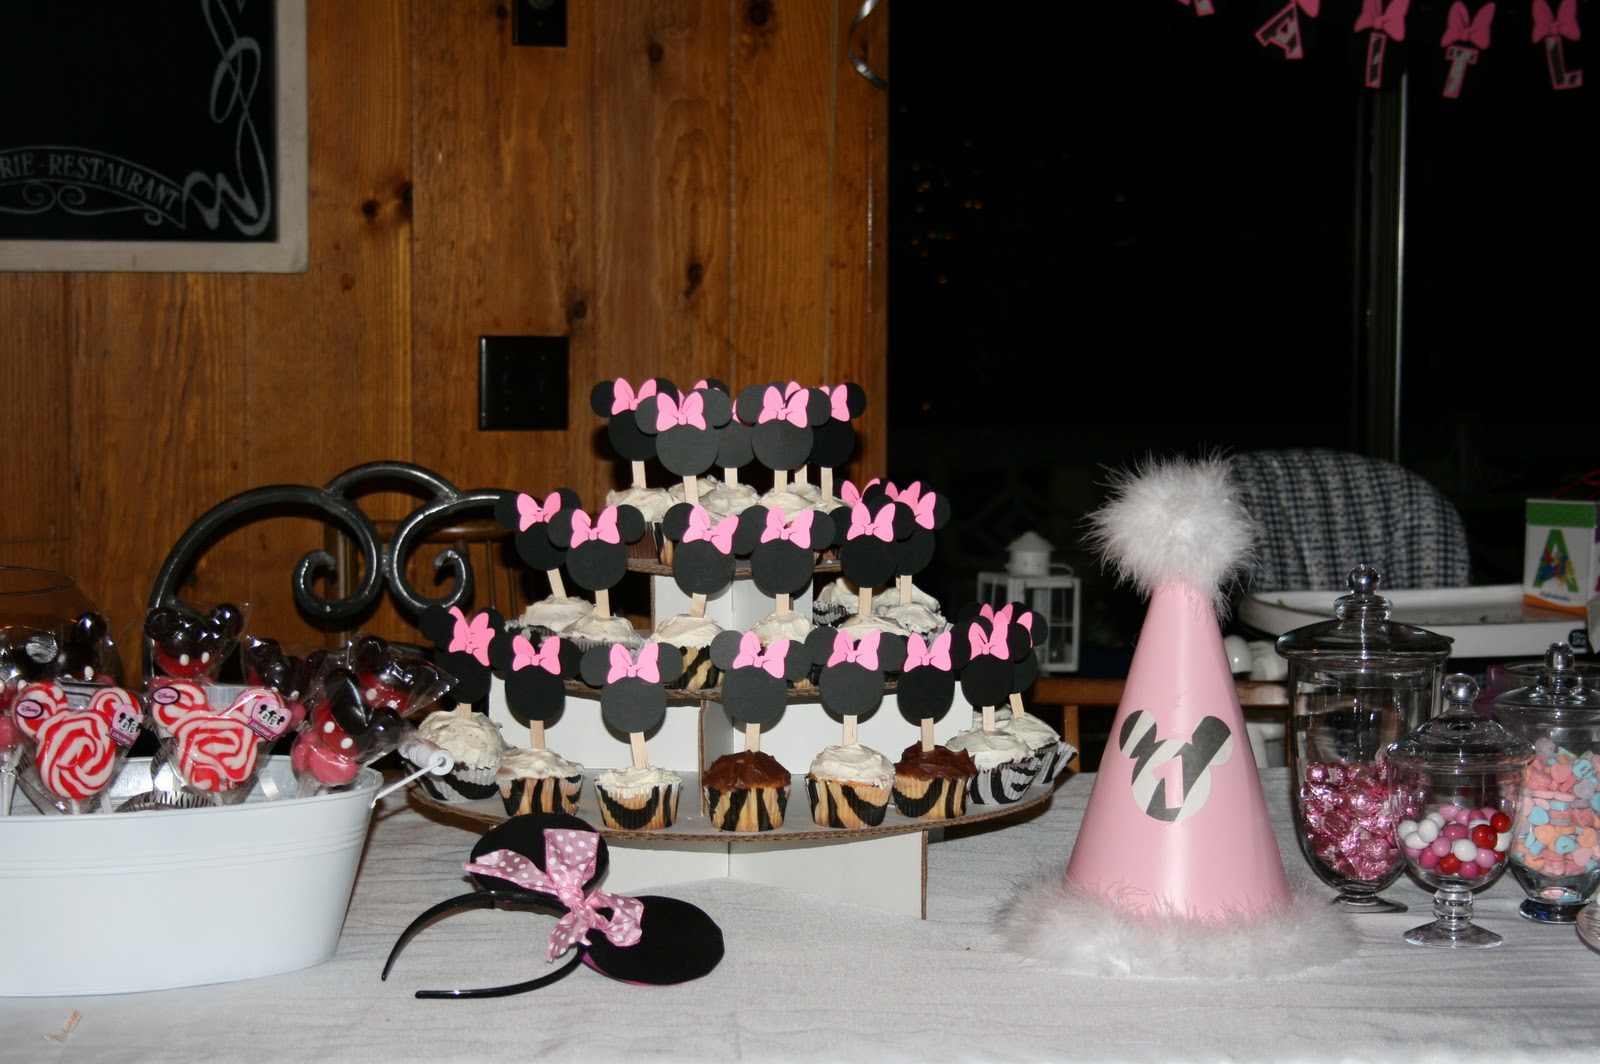 I Make The Minnie Mickey Banners Customized By Name And Birthday Hats Favor EarsWe Made Ears Out Of Headbands For All